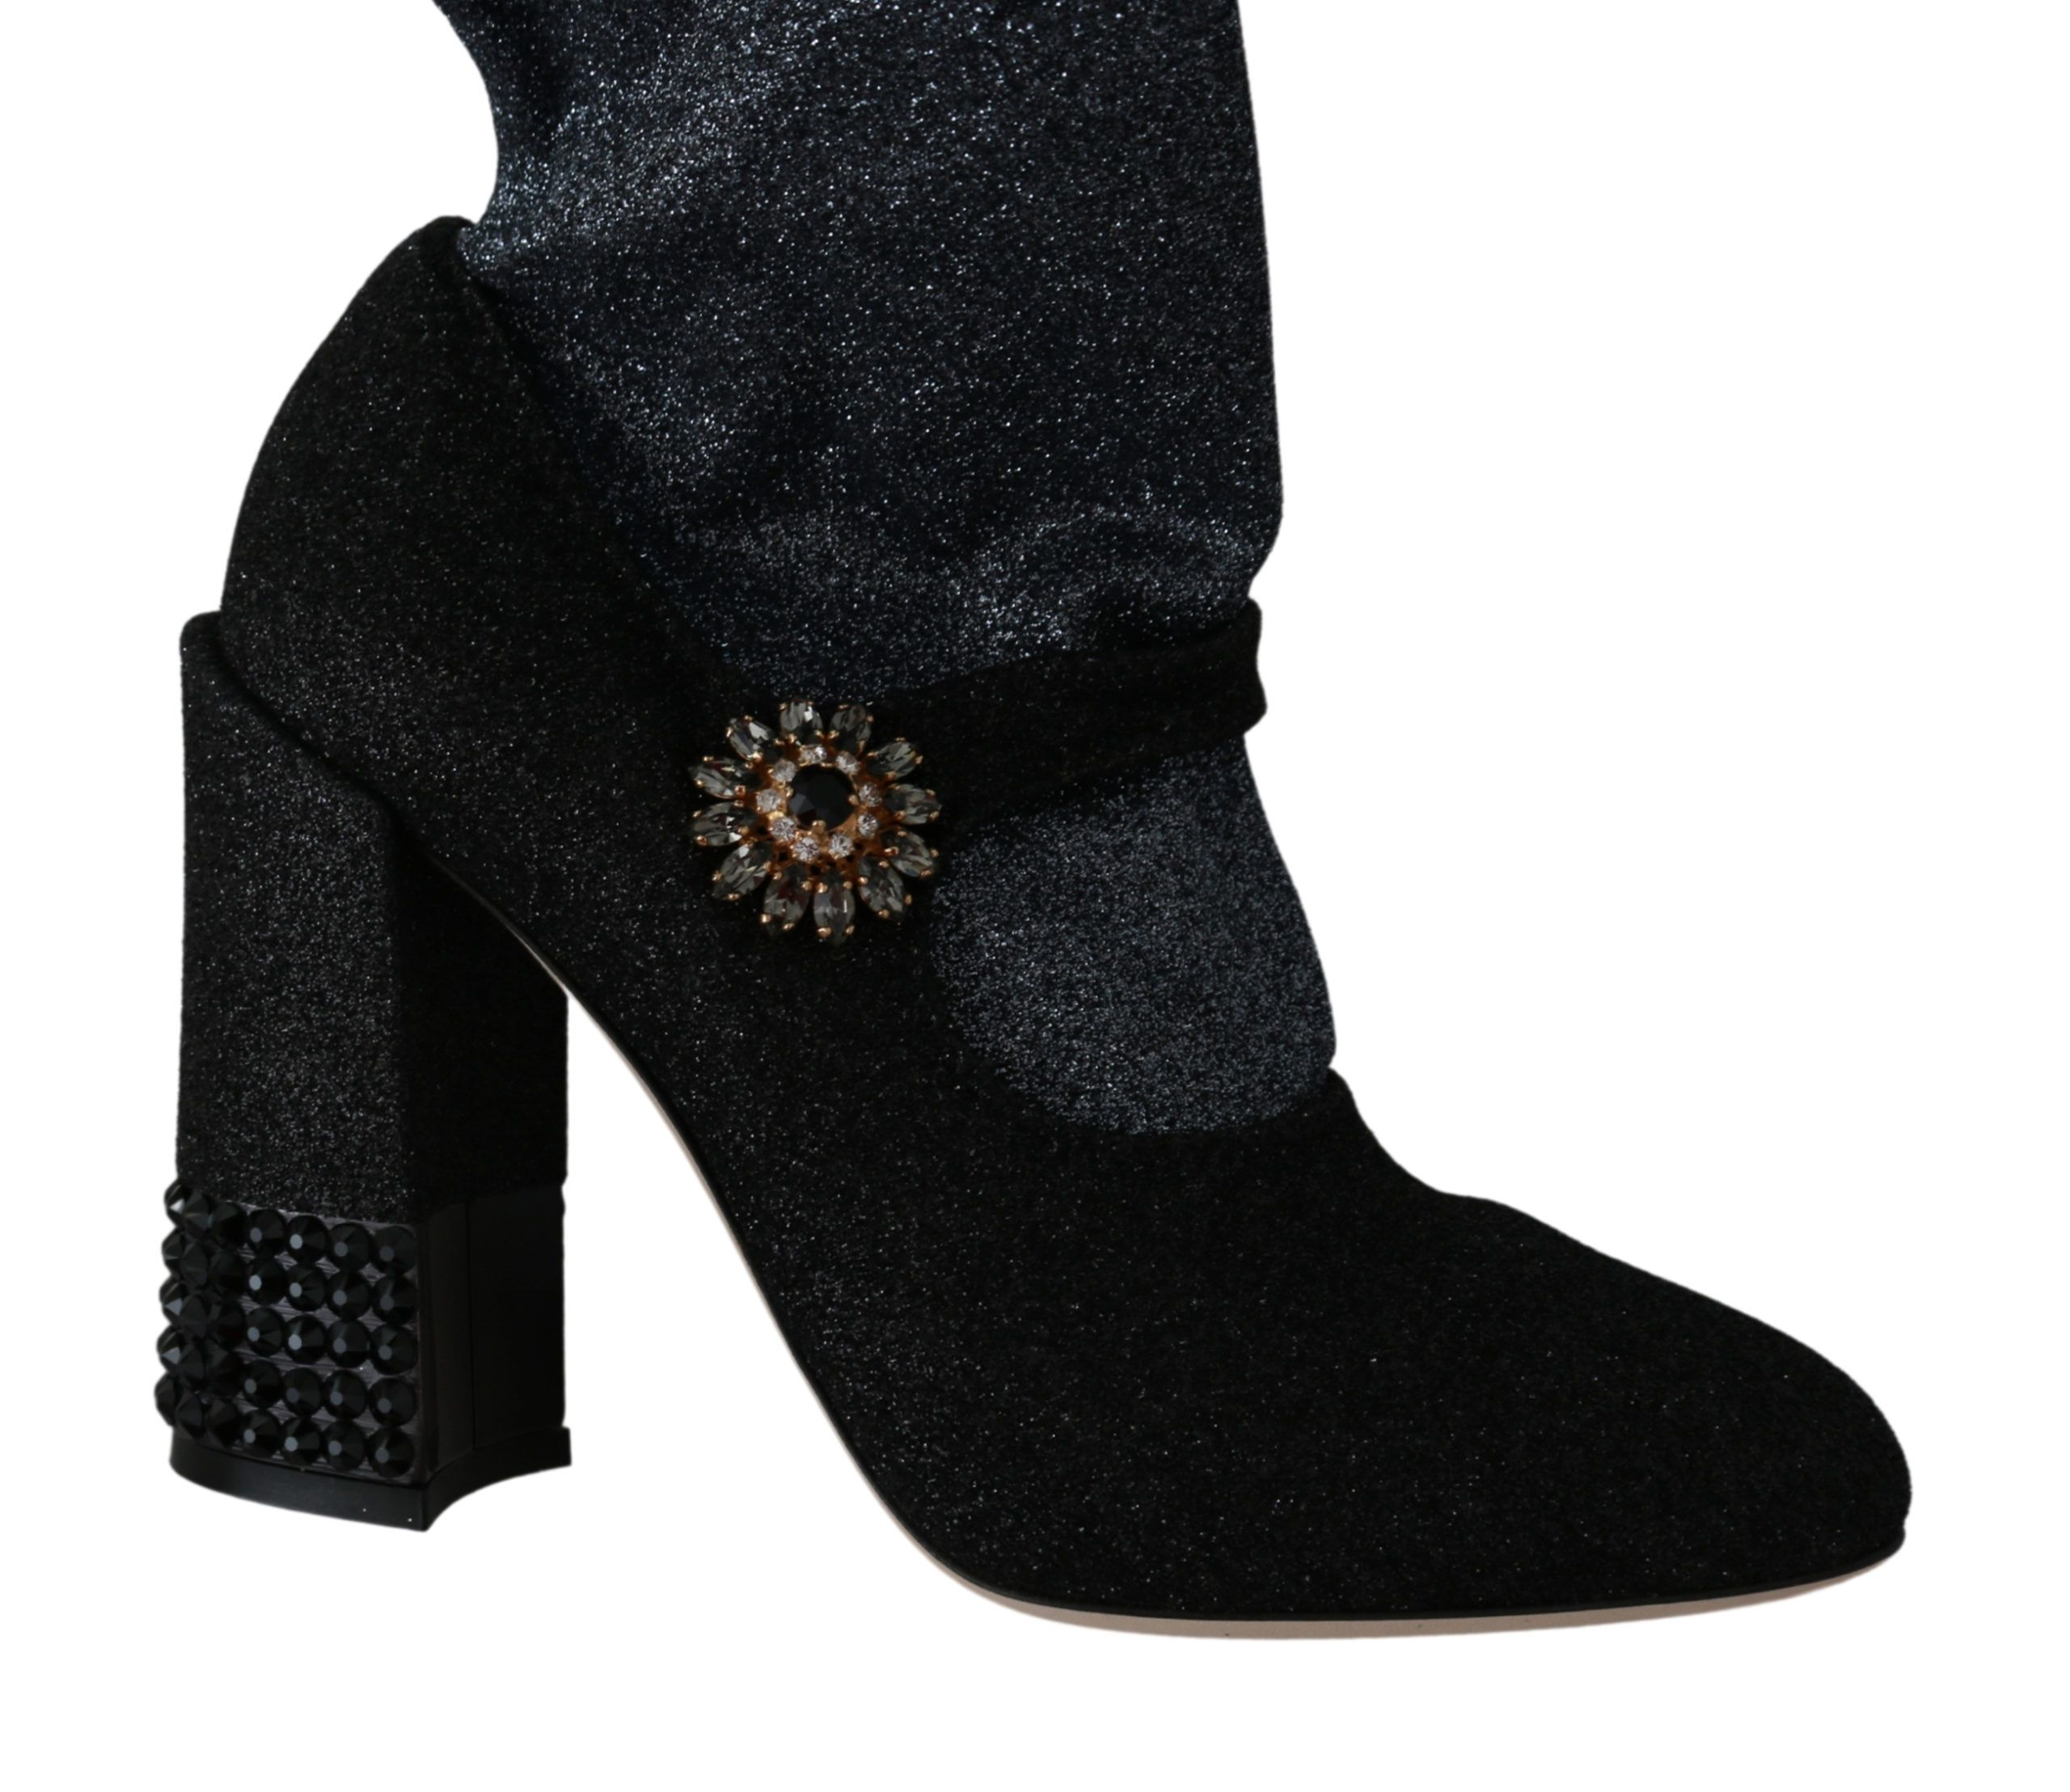 Dolce & Gabbana Black Crystal Mary Janes Booties Shoes